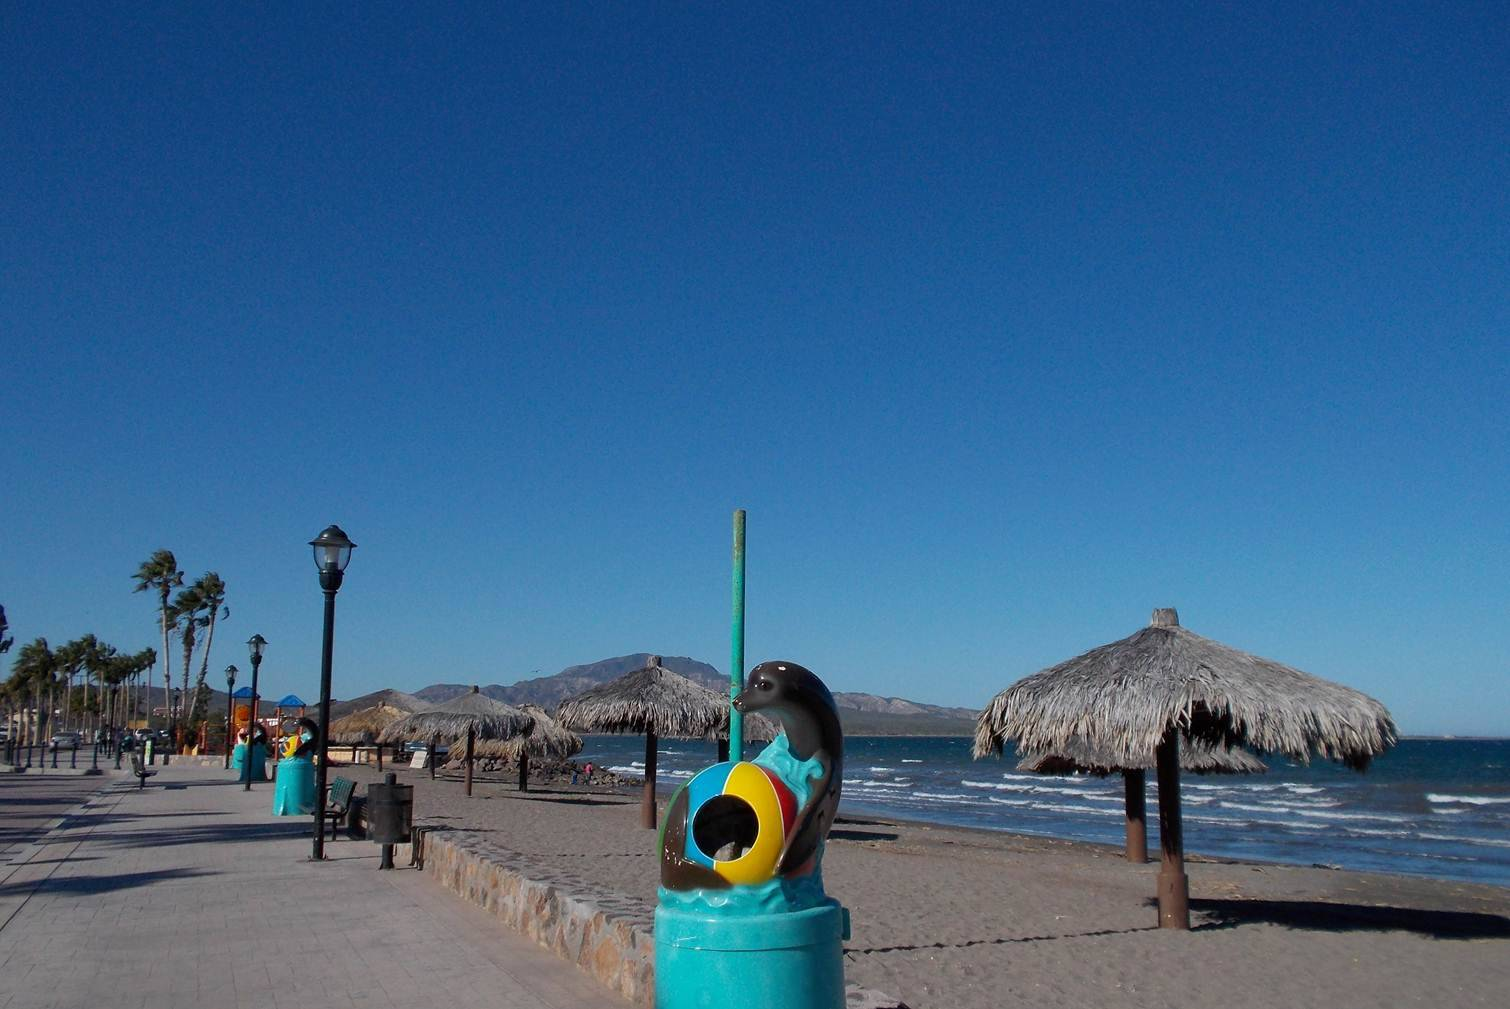 If you are looking to get away from it all, you might want to seek out Loreto, Mexico, a seaside village on the Baja Peninsula.